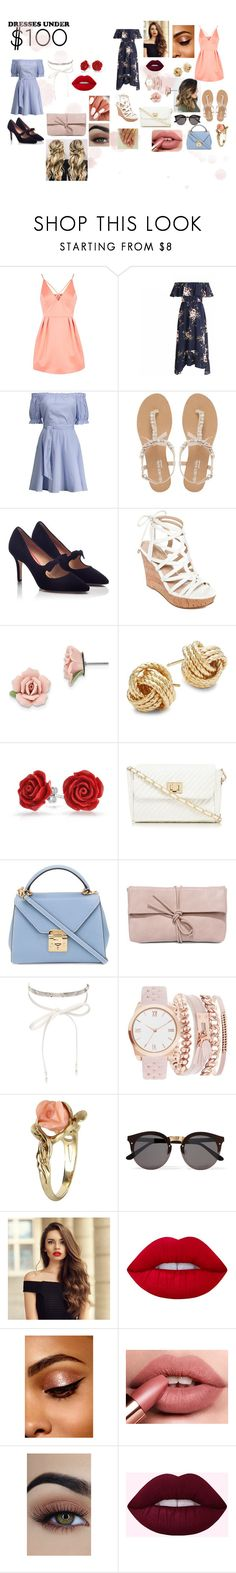 """dresses under 100$"" by melodievilleneuvef ❤ liked on Polyvore featuring Topshop, Head Over Heels by Dune, PAS DE ROUGE, GUESS, 1928, Saks Fifth Avenue, Bling Jewelry, Red Herring, Mark Cross and LULUS"